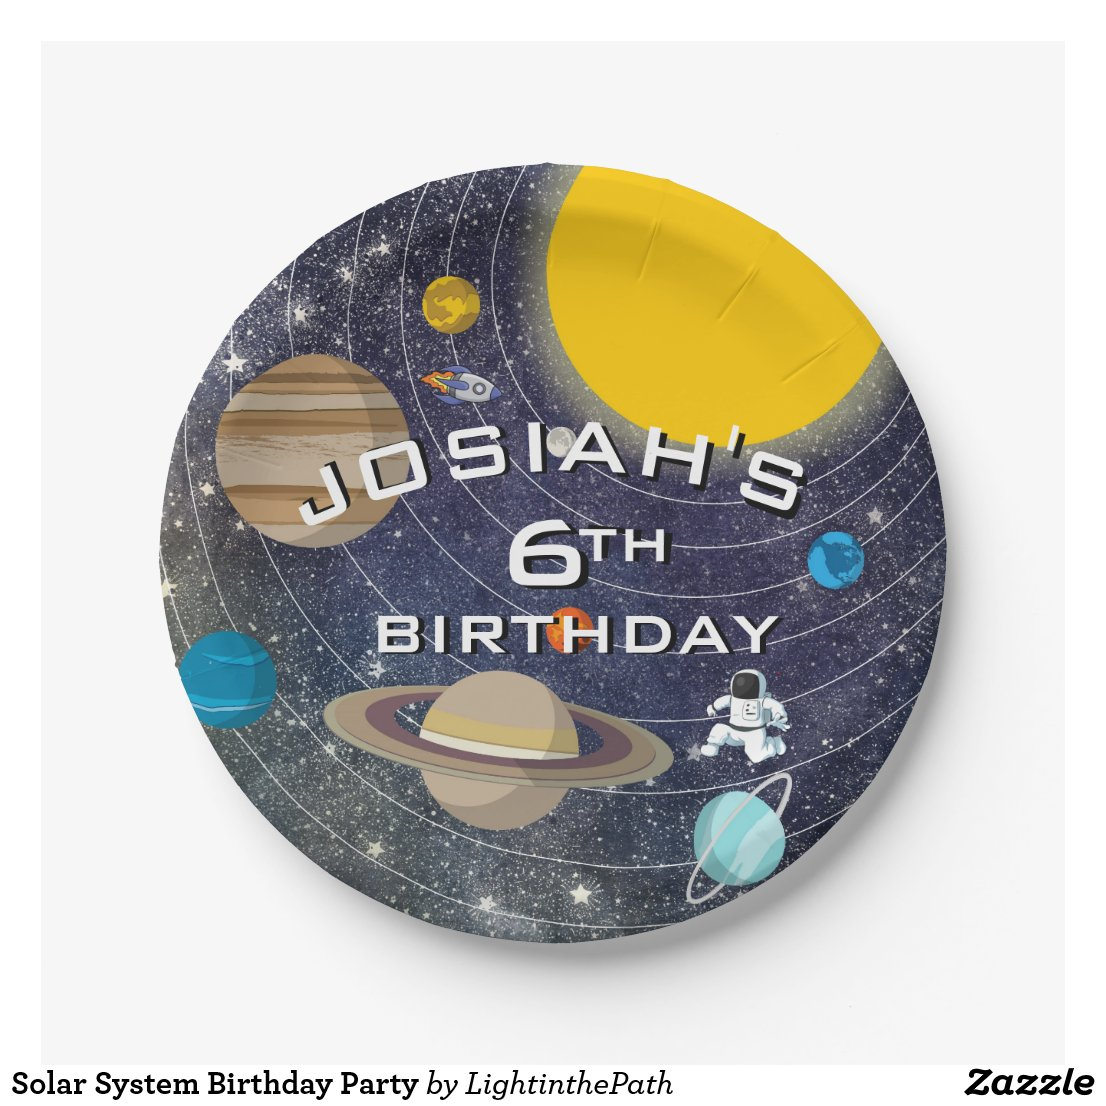 Solar System Birthday Party Plate